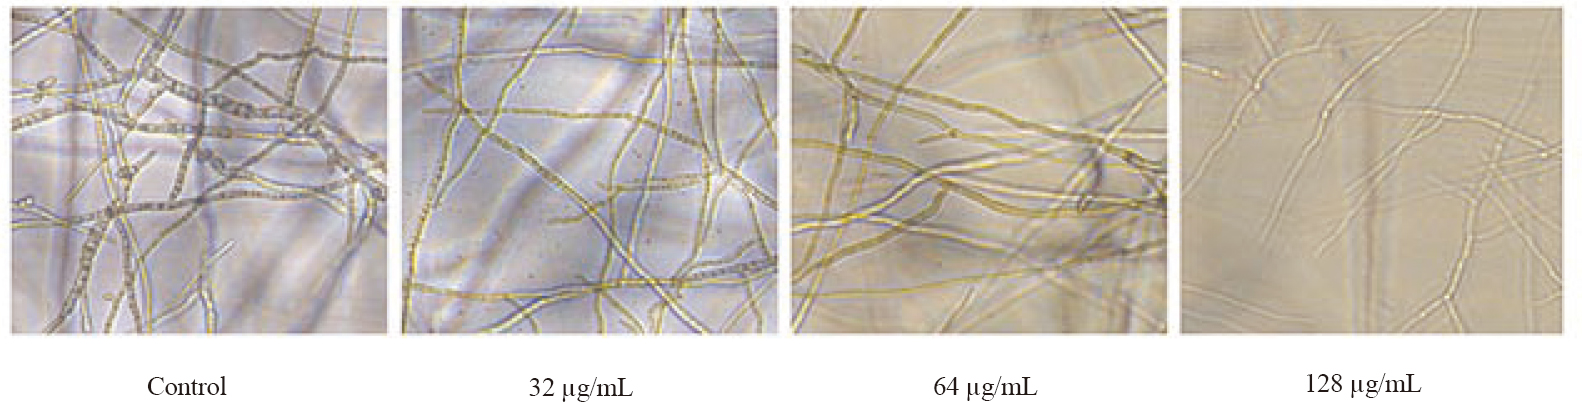 Figure 3: Microscopic examination of the hyphal growth of FSSL (F3) after 48 h of treatment with different concentrations of <i>C. amada</i>.